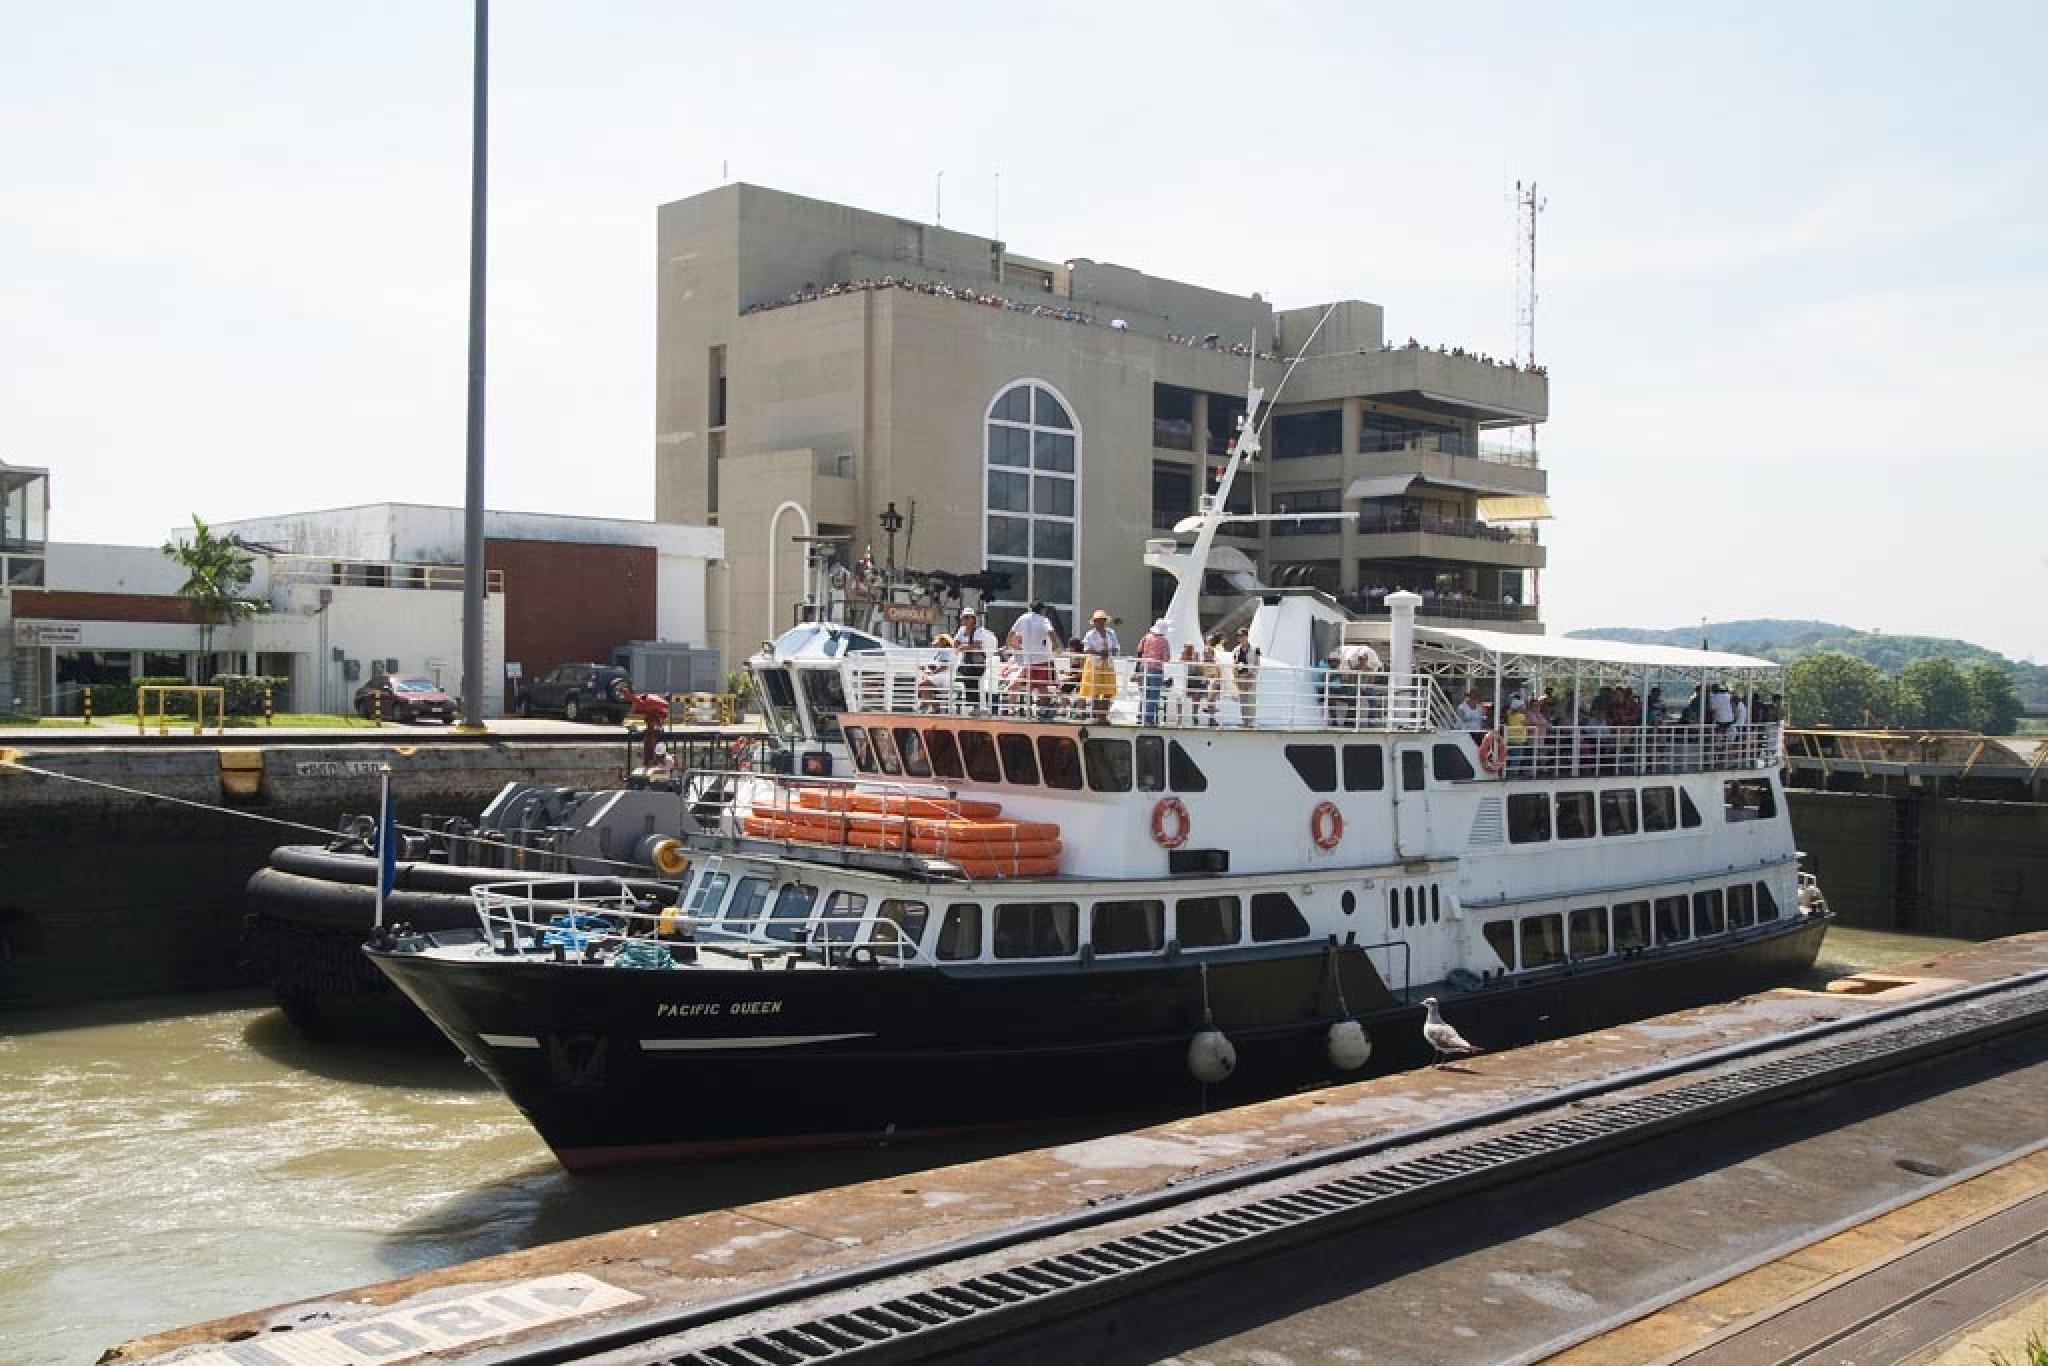 Pacific Queen Cruise Tour on Panama Canal